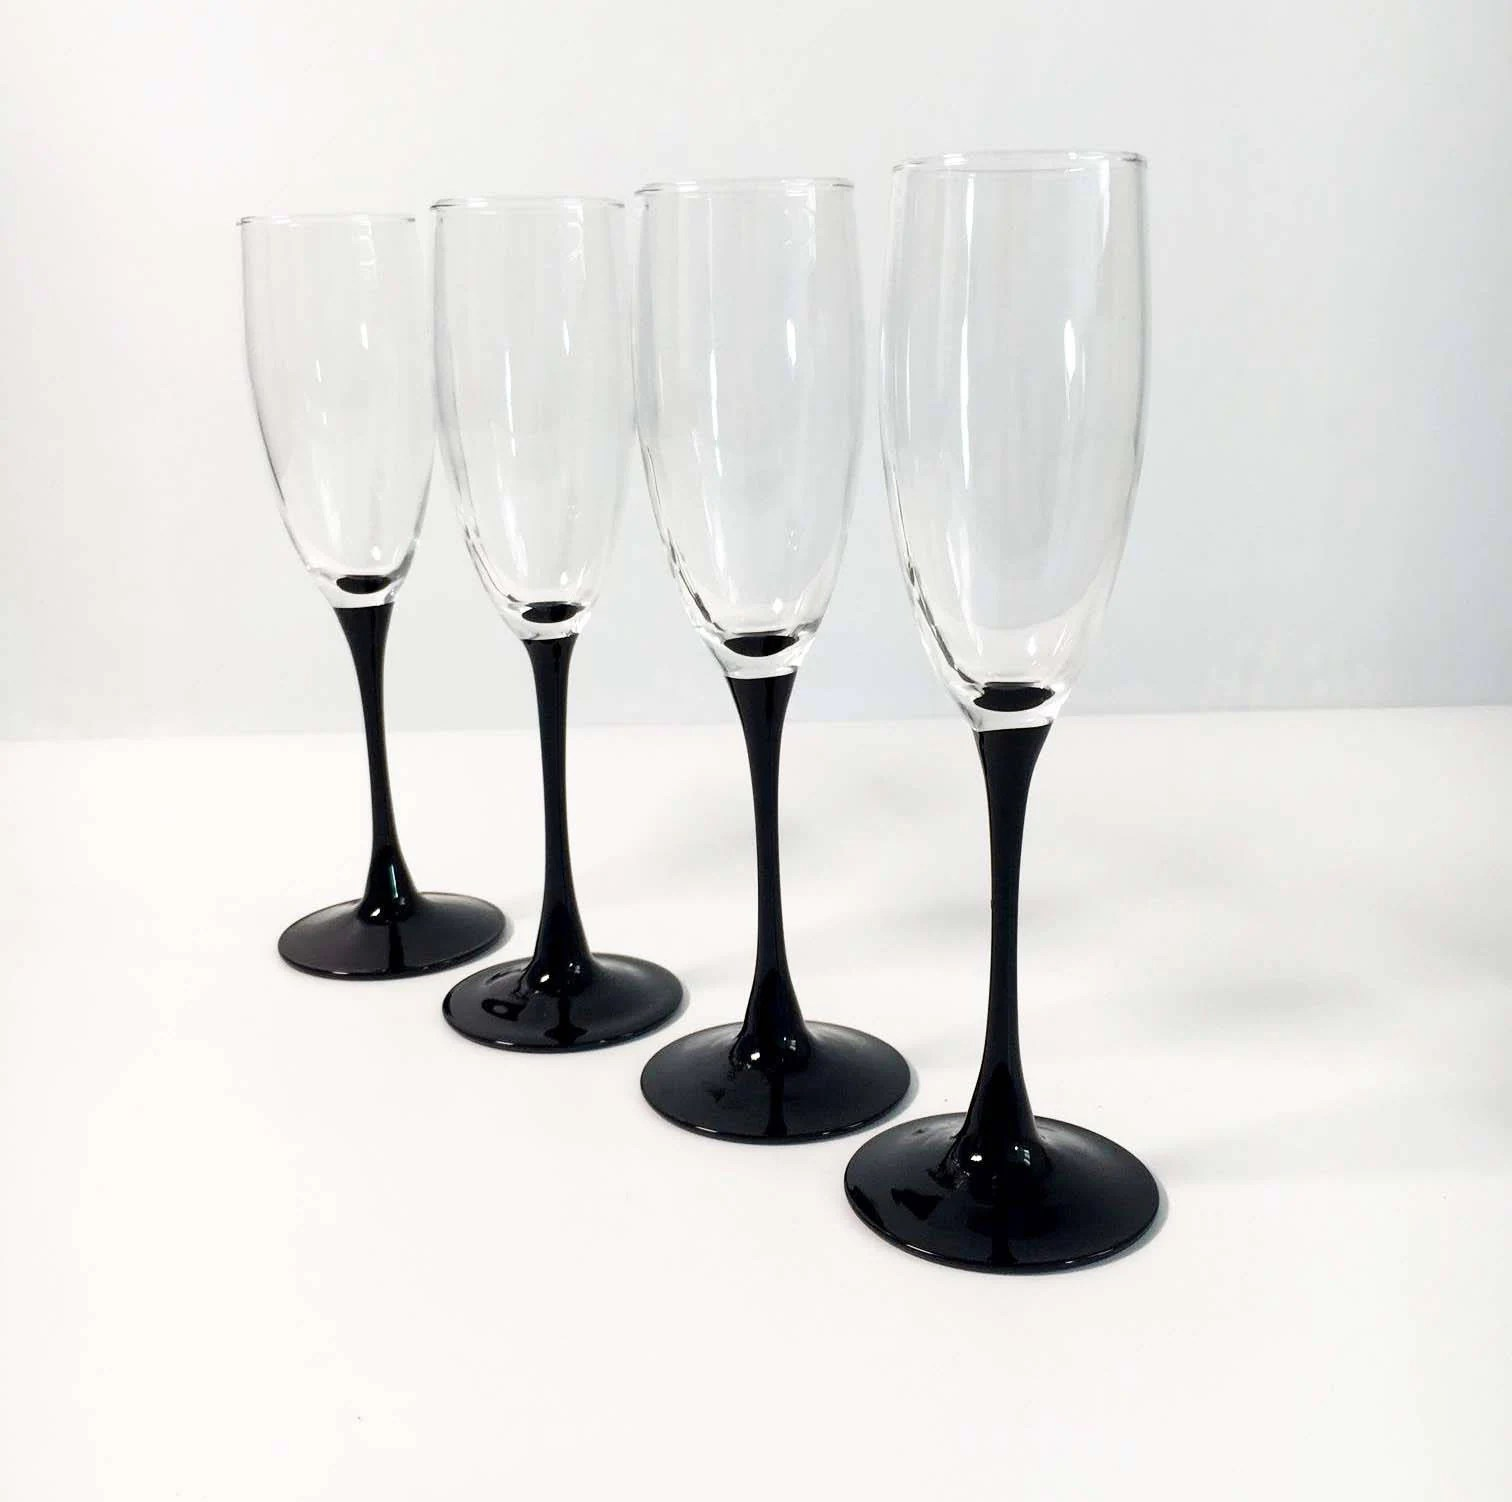 Wine Glasses With Black Stems Vintage Set Of 4 Luminarc France Black Stemmed Champagne